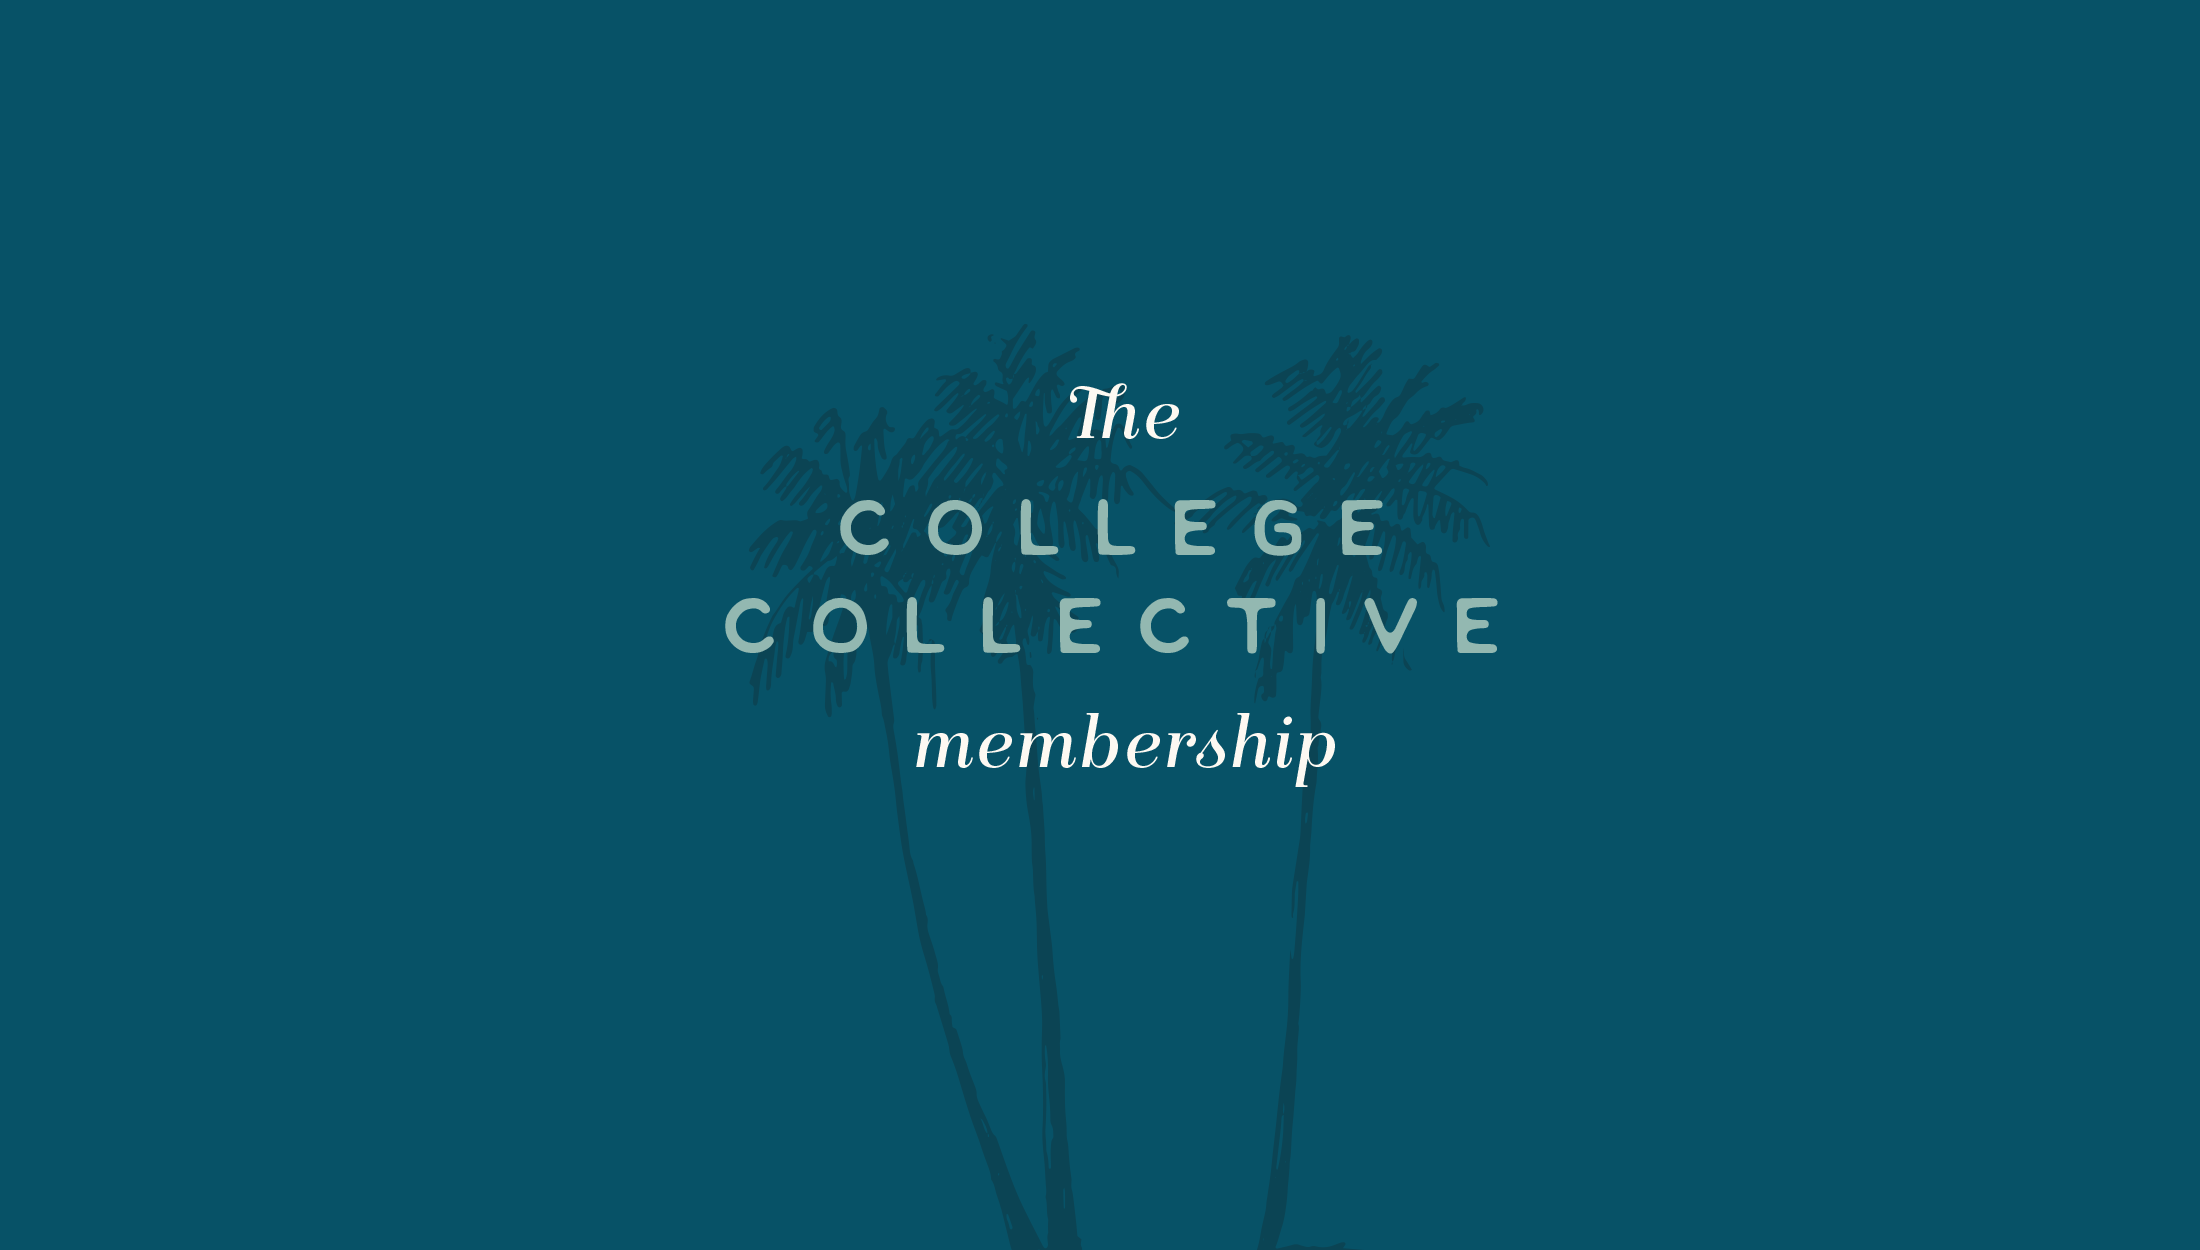 Alternative logomark for College Collective, The College Collective membership gives students a step-by-step plan for applying to college with the support of a community full of other educational professionals and peers - designed by Wiltshire-based graphic designer, Kaye Huett